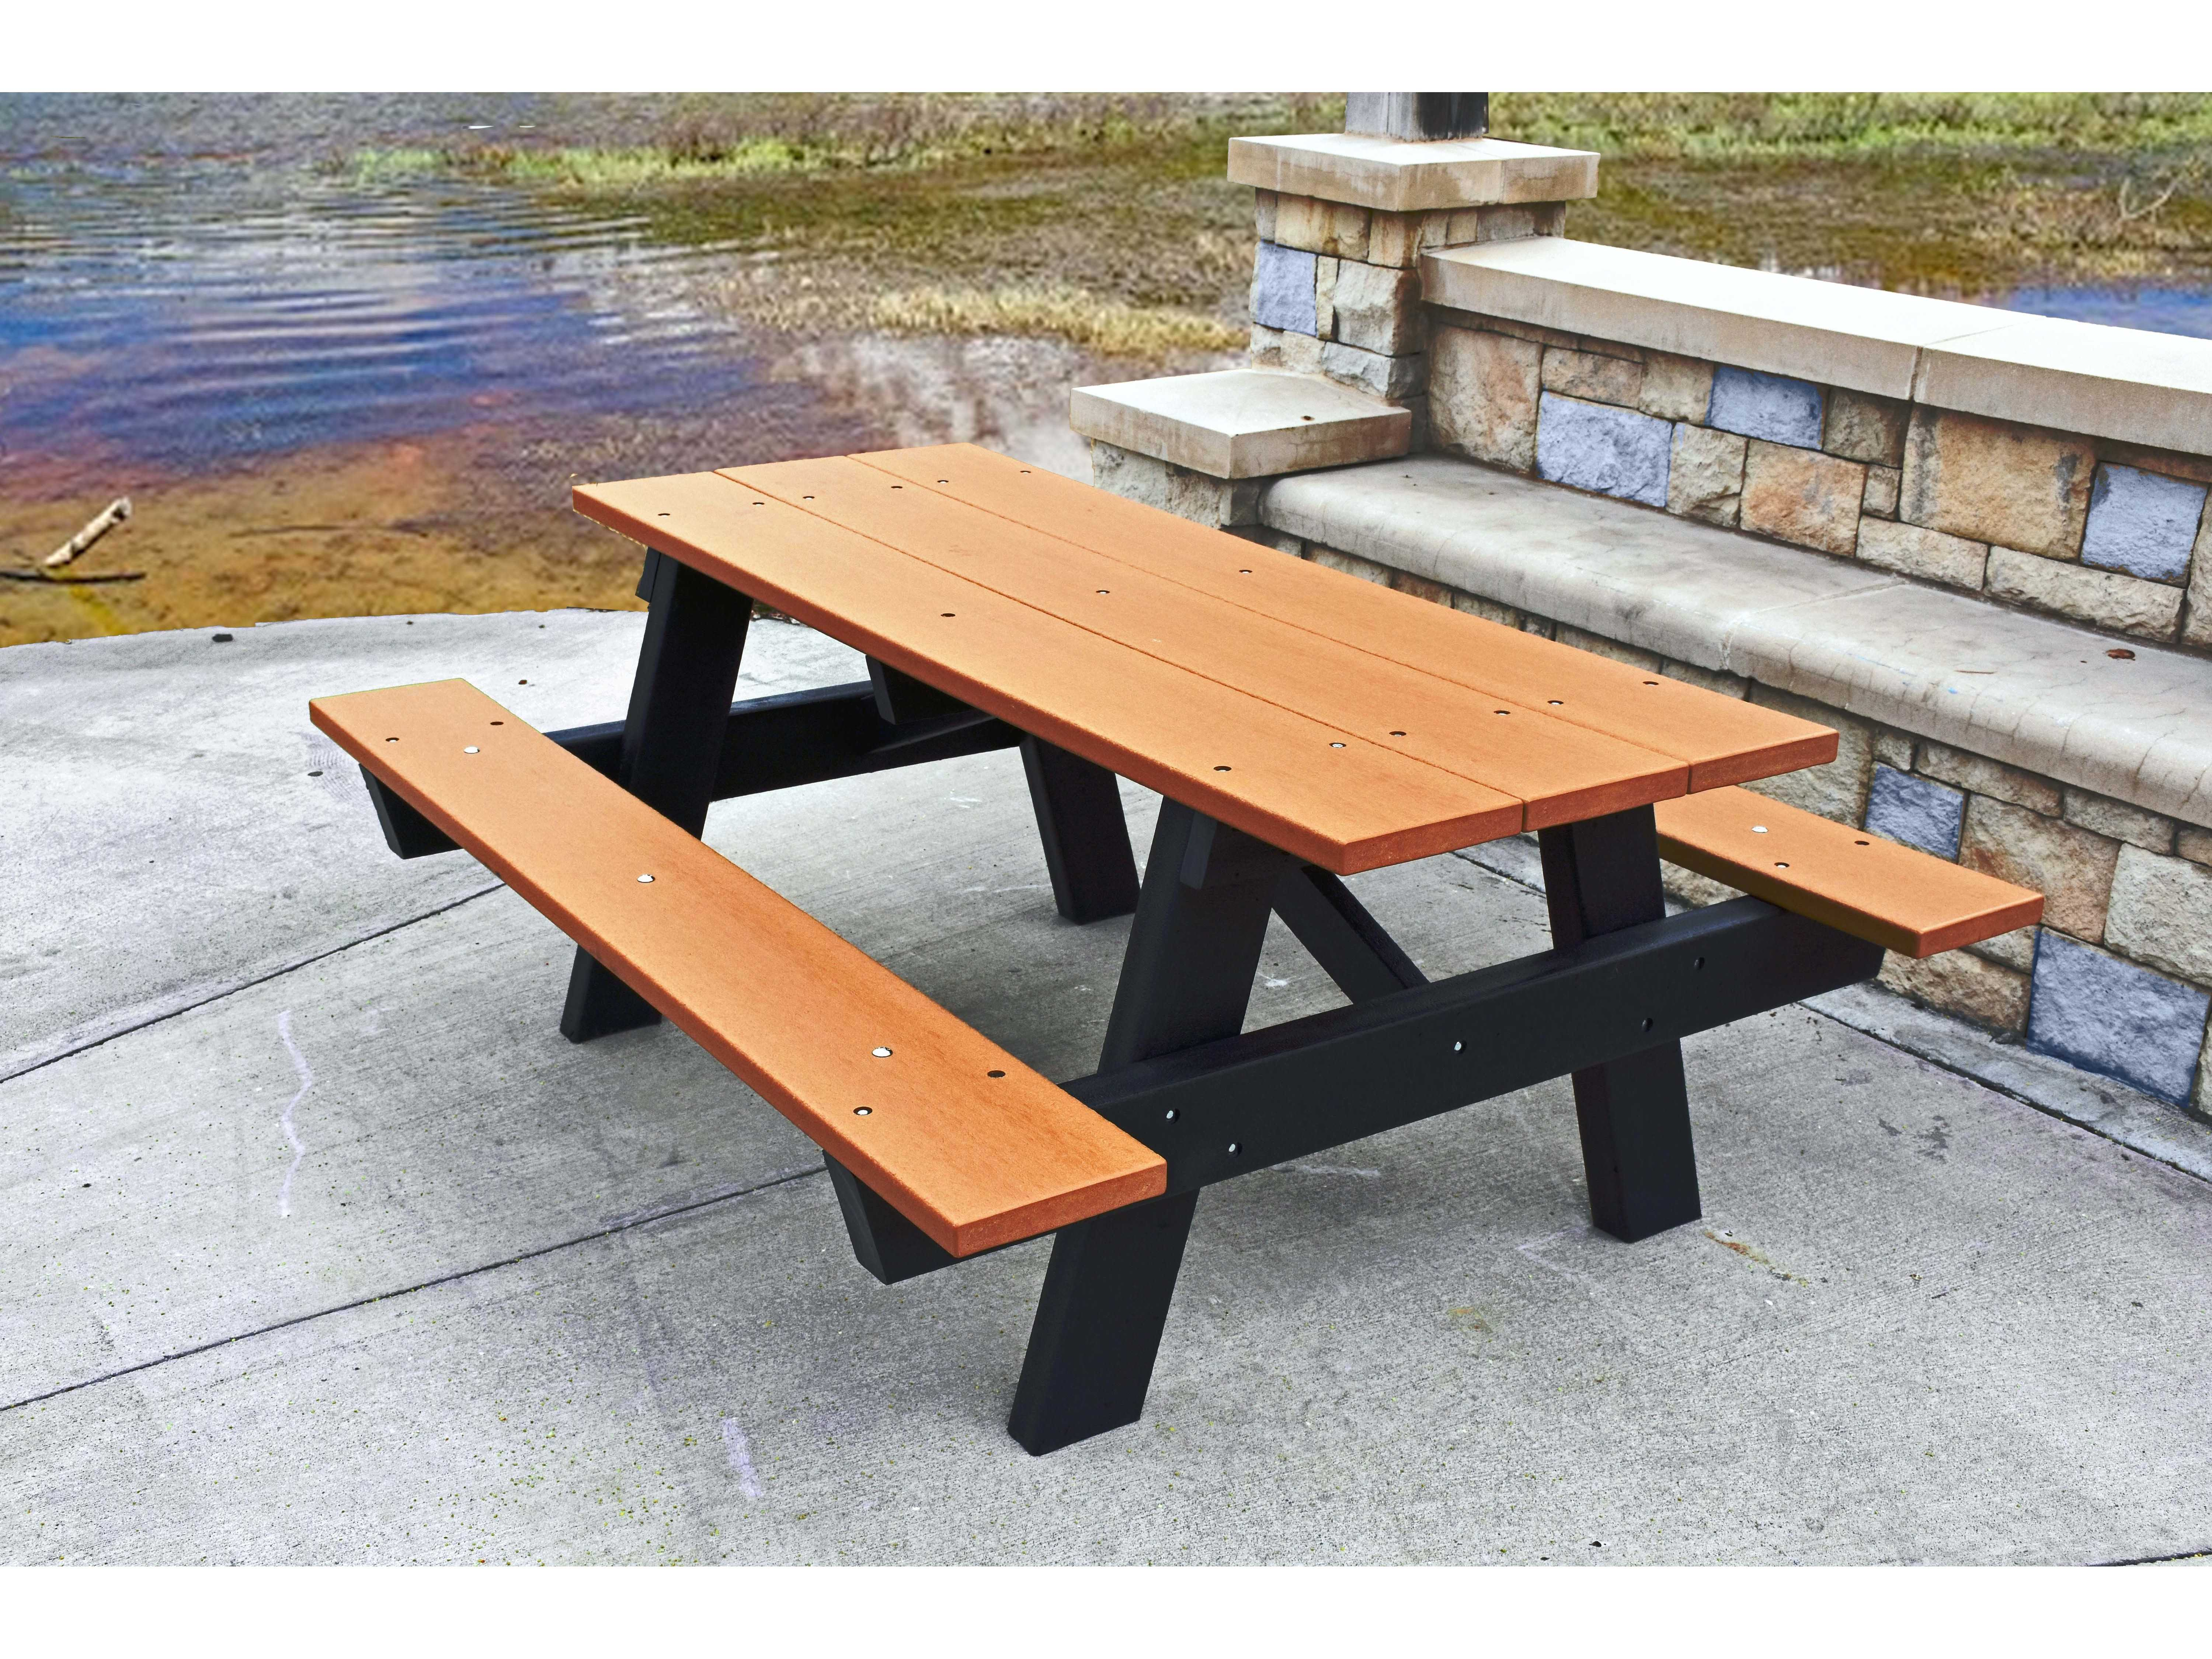 internet benches bench recycled rbf specials rock dynamicpage pilot n park general equipment plastic